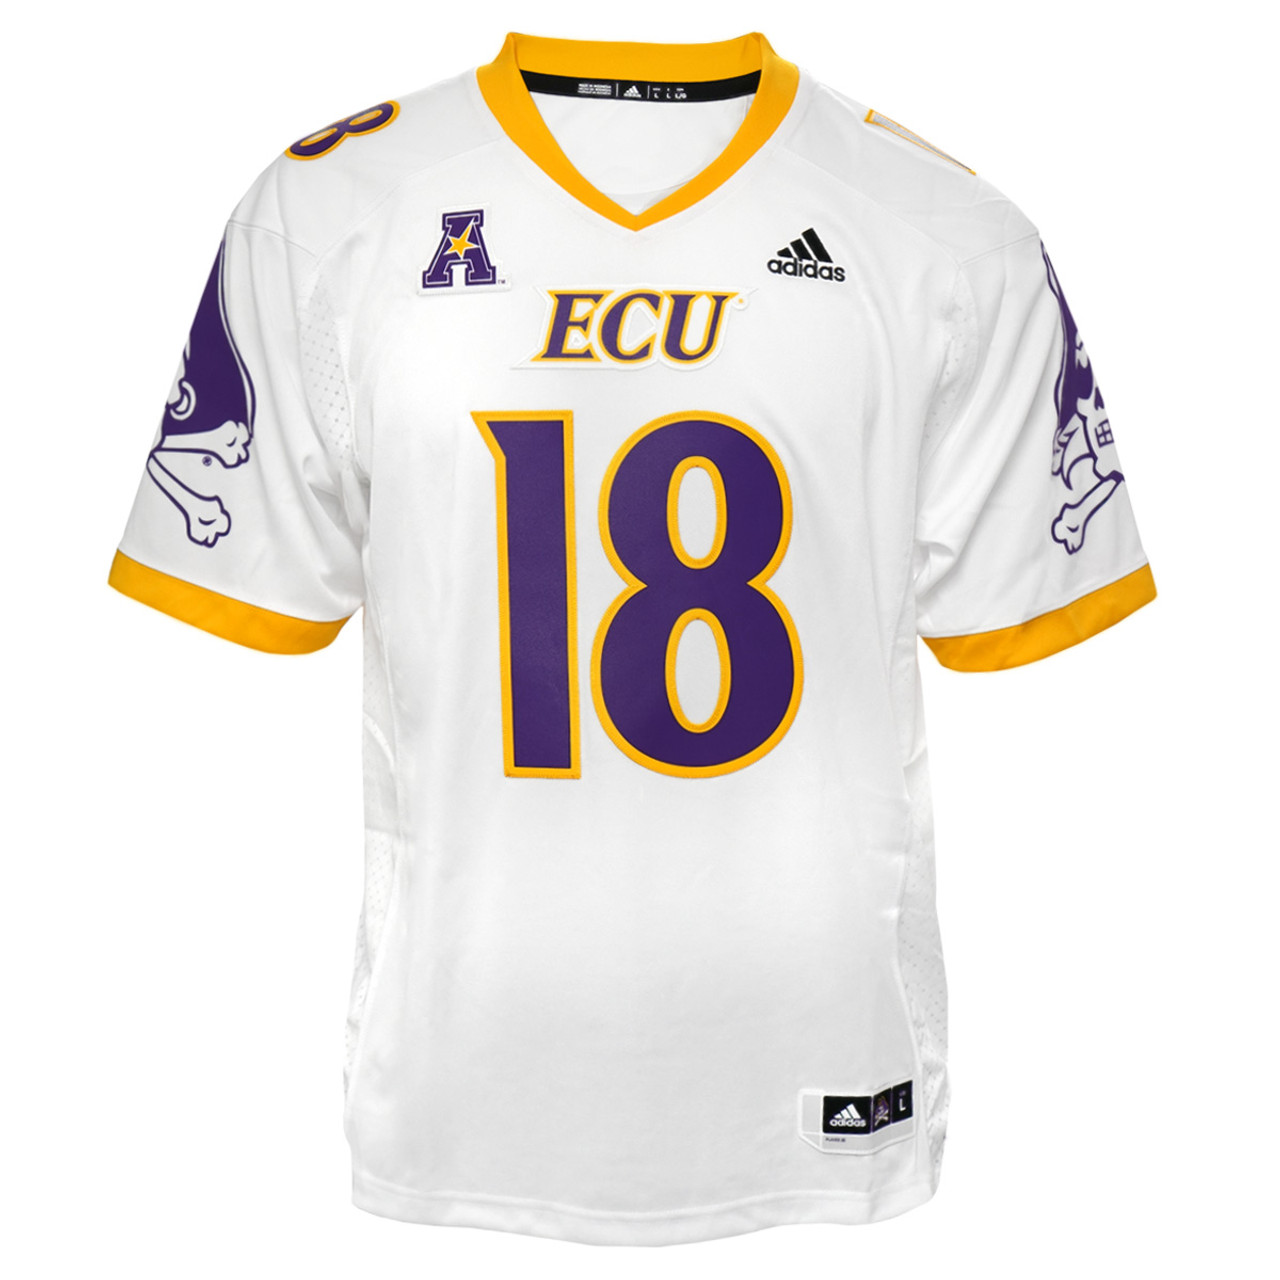 check out c6169 e0fb9 White Authentic #18 ECU Football Jersey